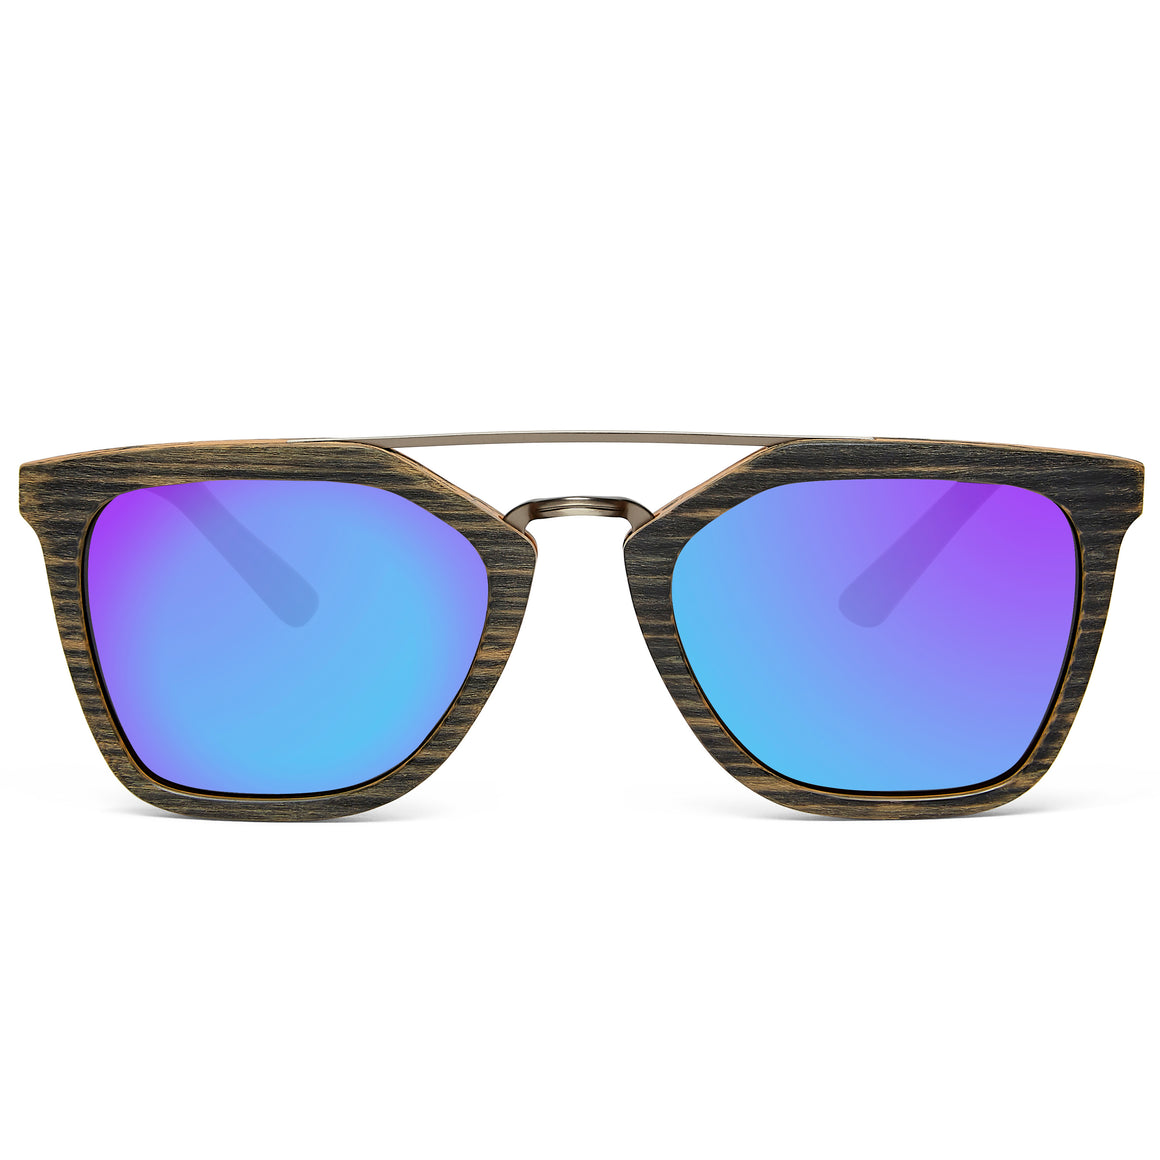 VILI W/BAR Blue Mirror Polarized